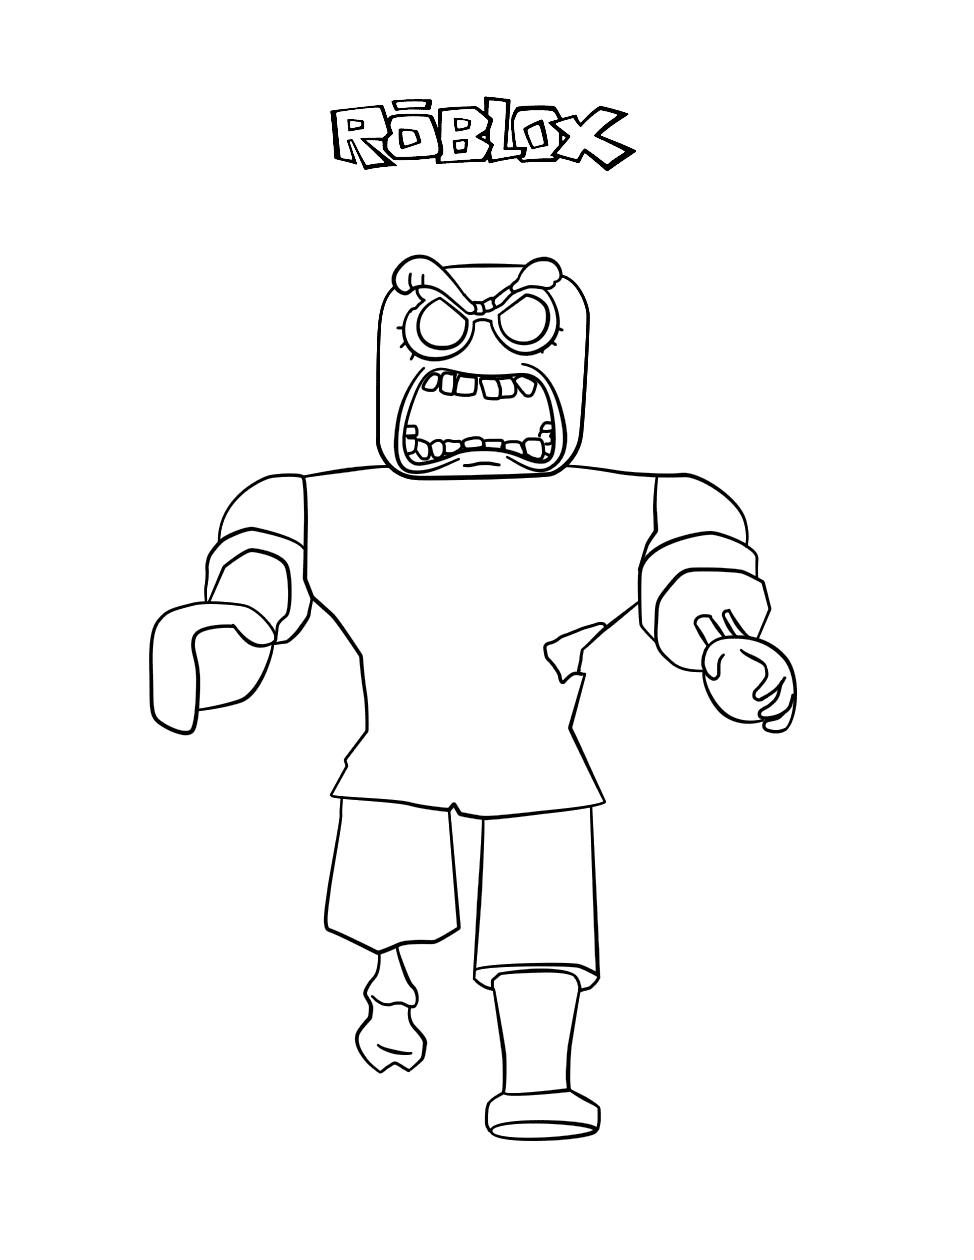 - Roblox Zombie Coloring Pages – Coloring.rocks!